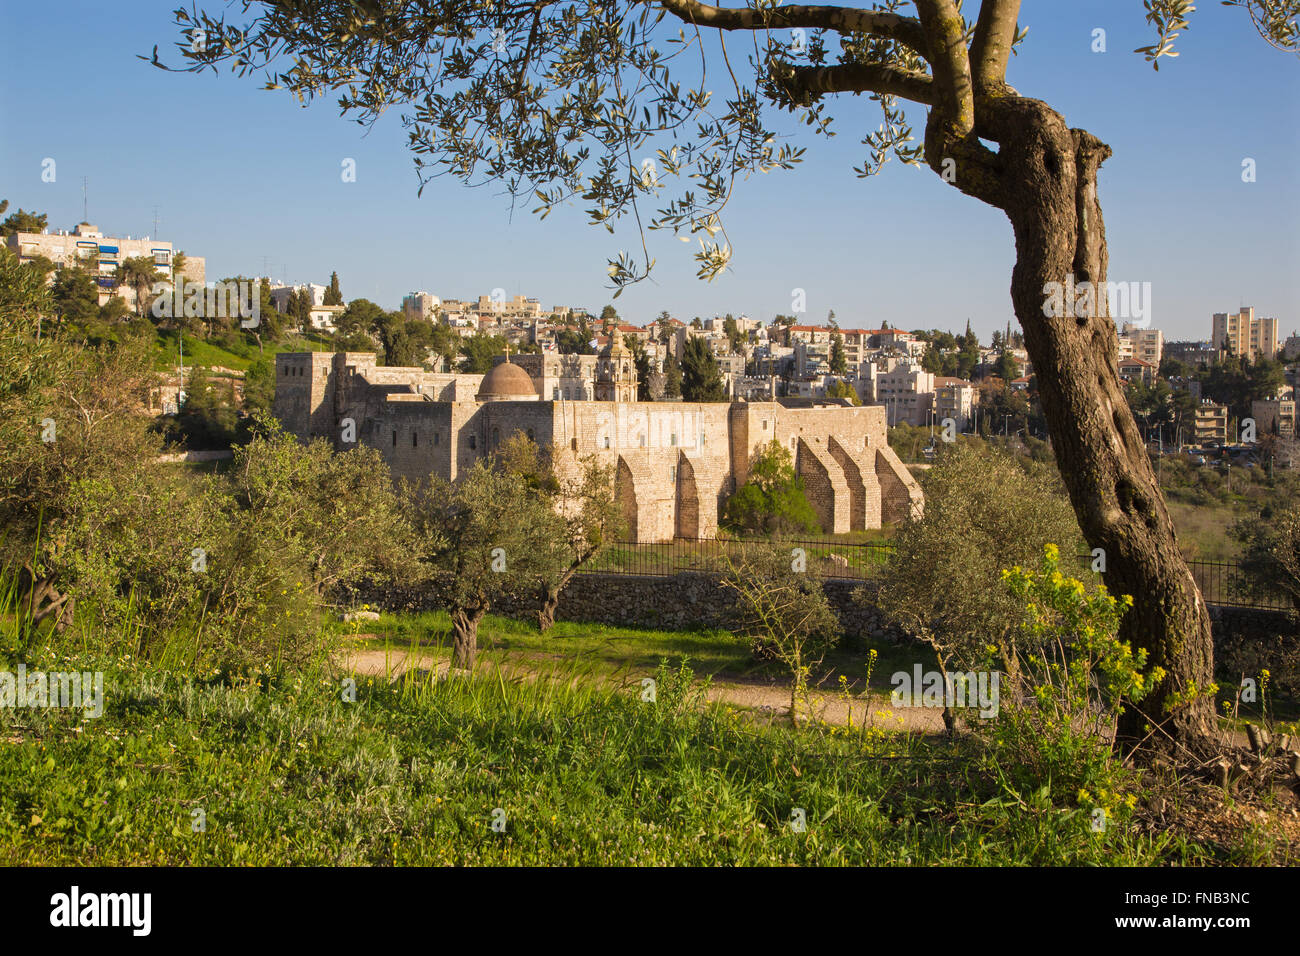 Israel - Jerusalem - Monastery of the Cross from the 11th century. - Stock Image